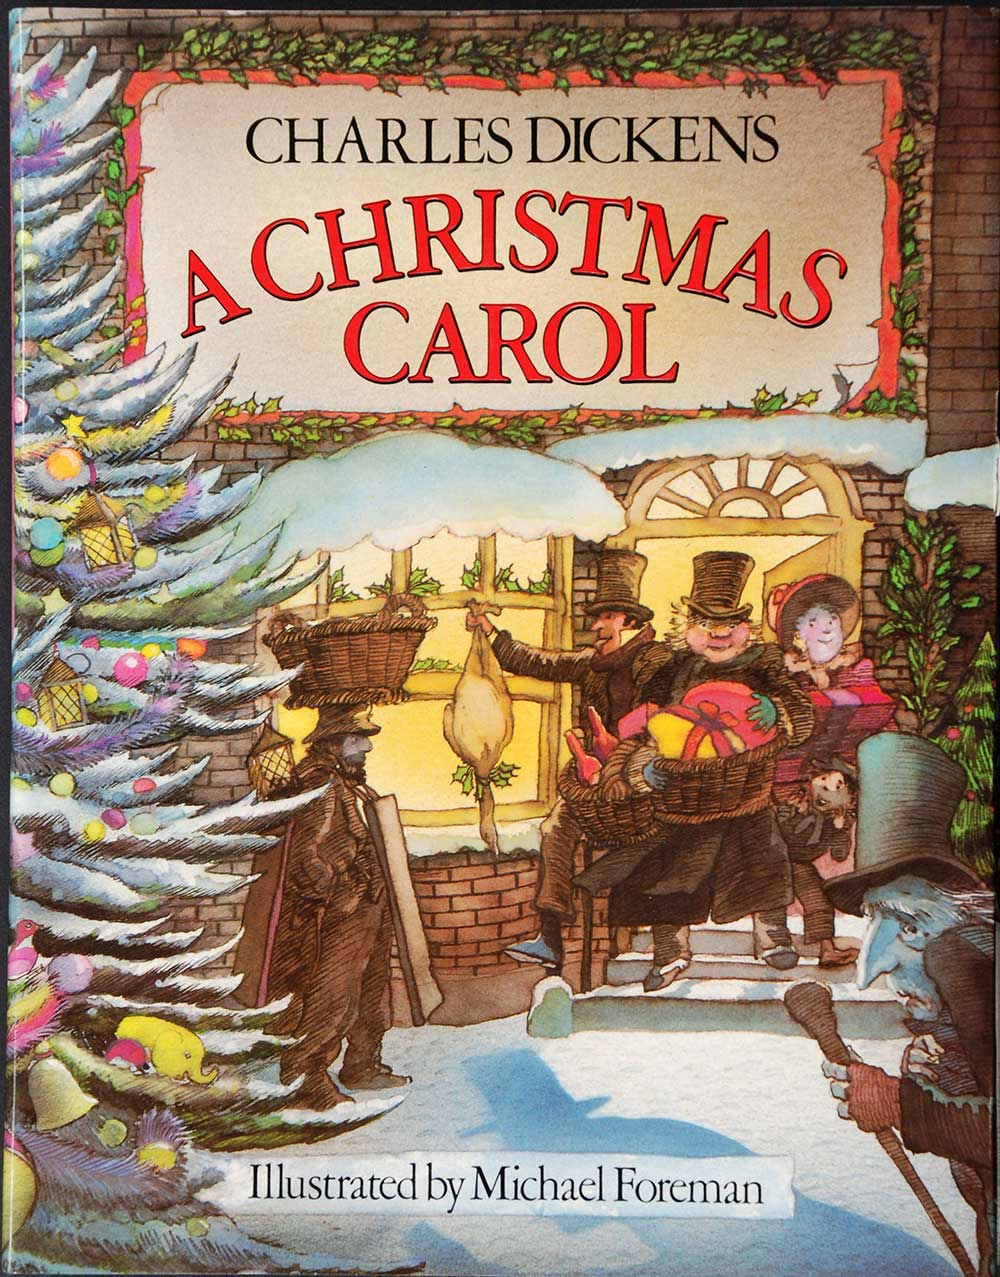 reed gallery dunedin public libraries <em>a christmas carol < em> illustrated by